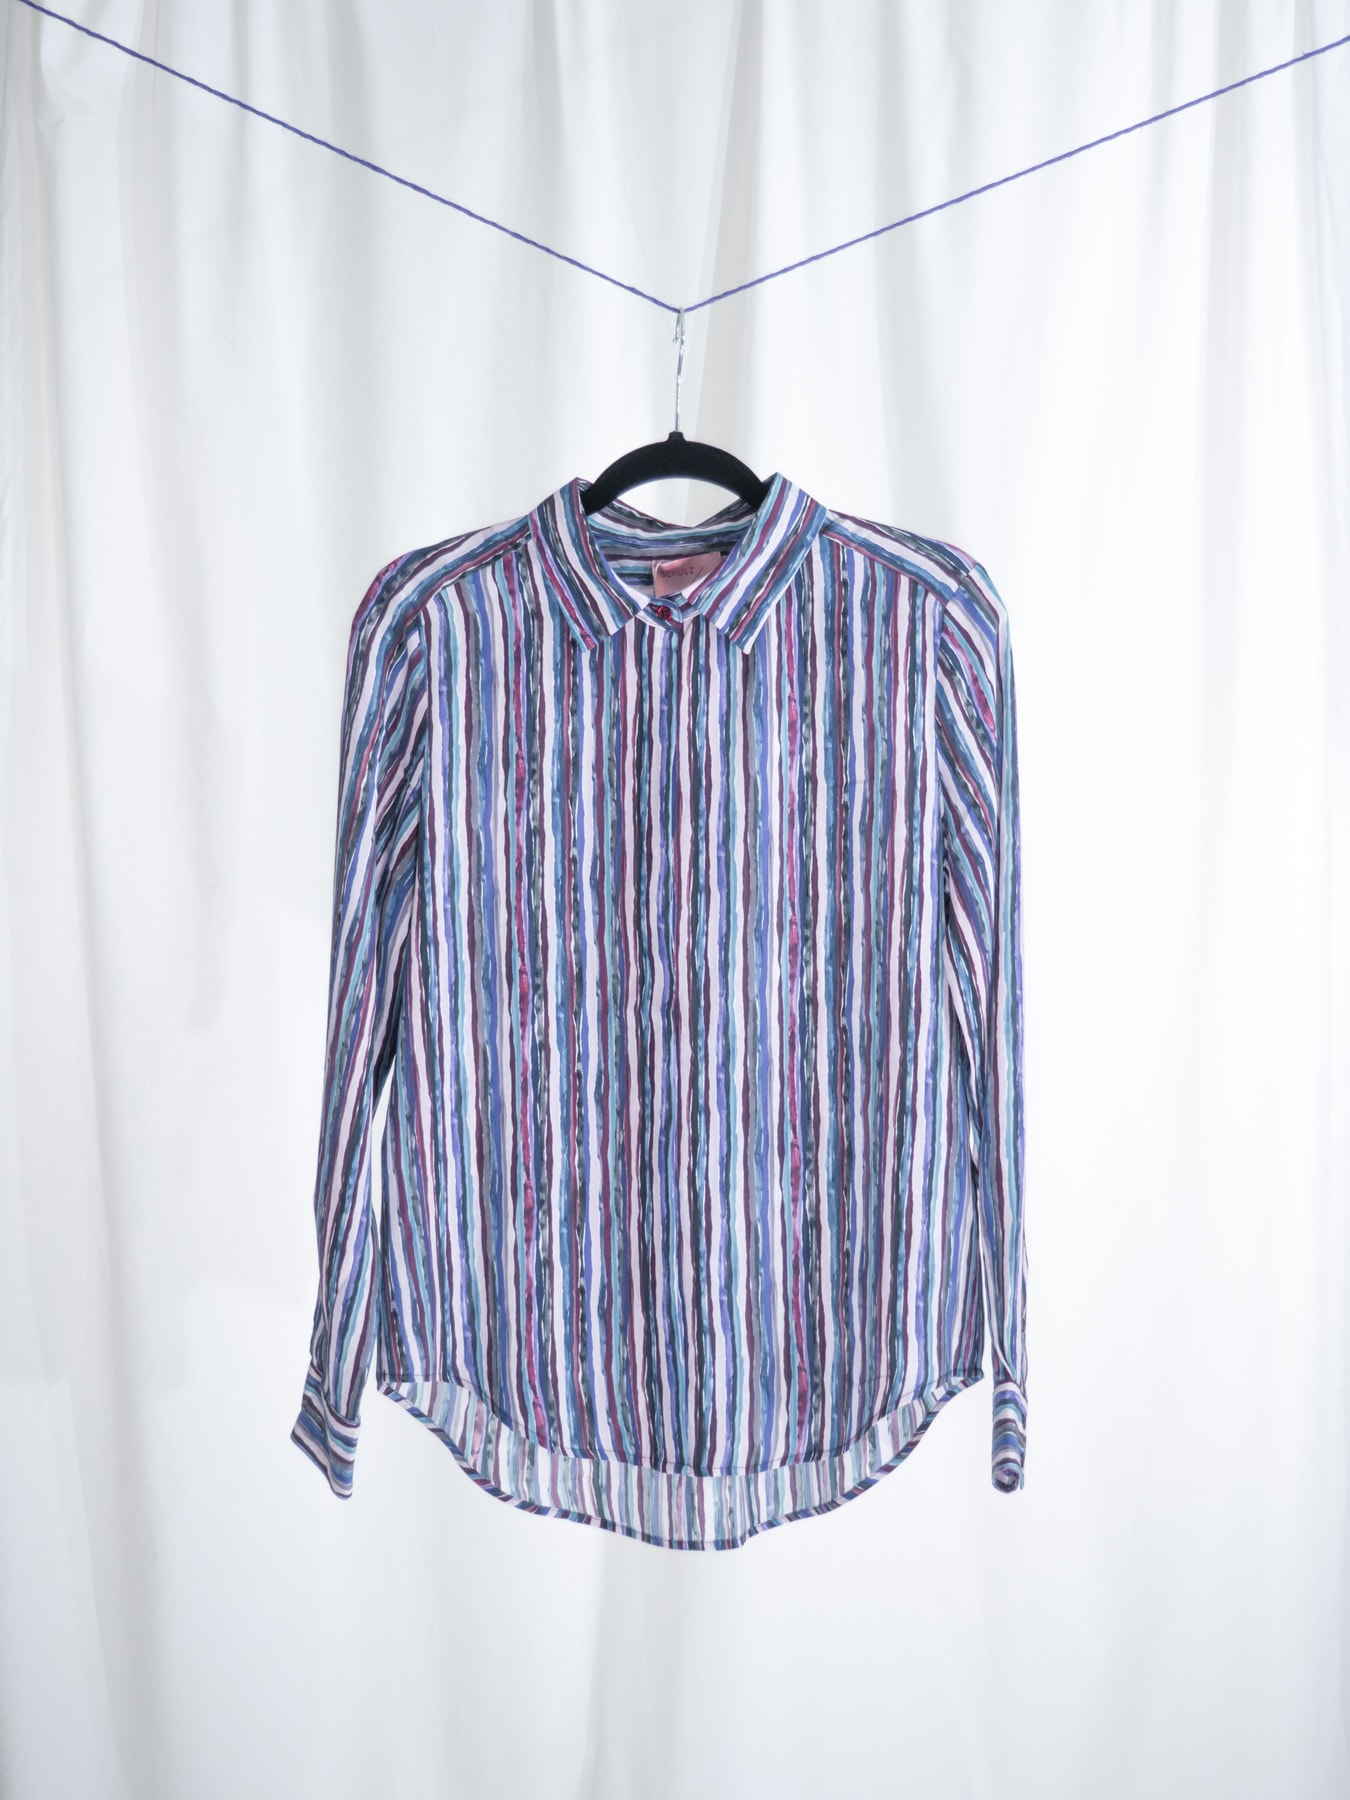 Sally shirt ripped stripes